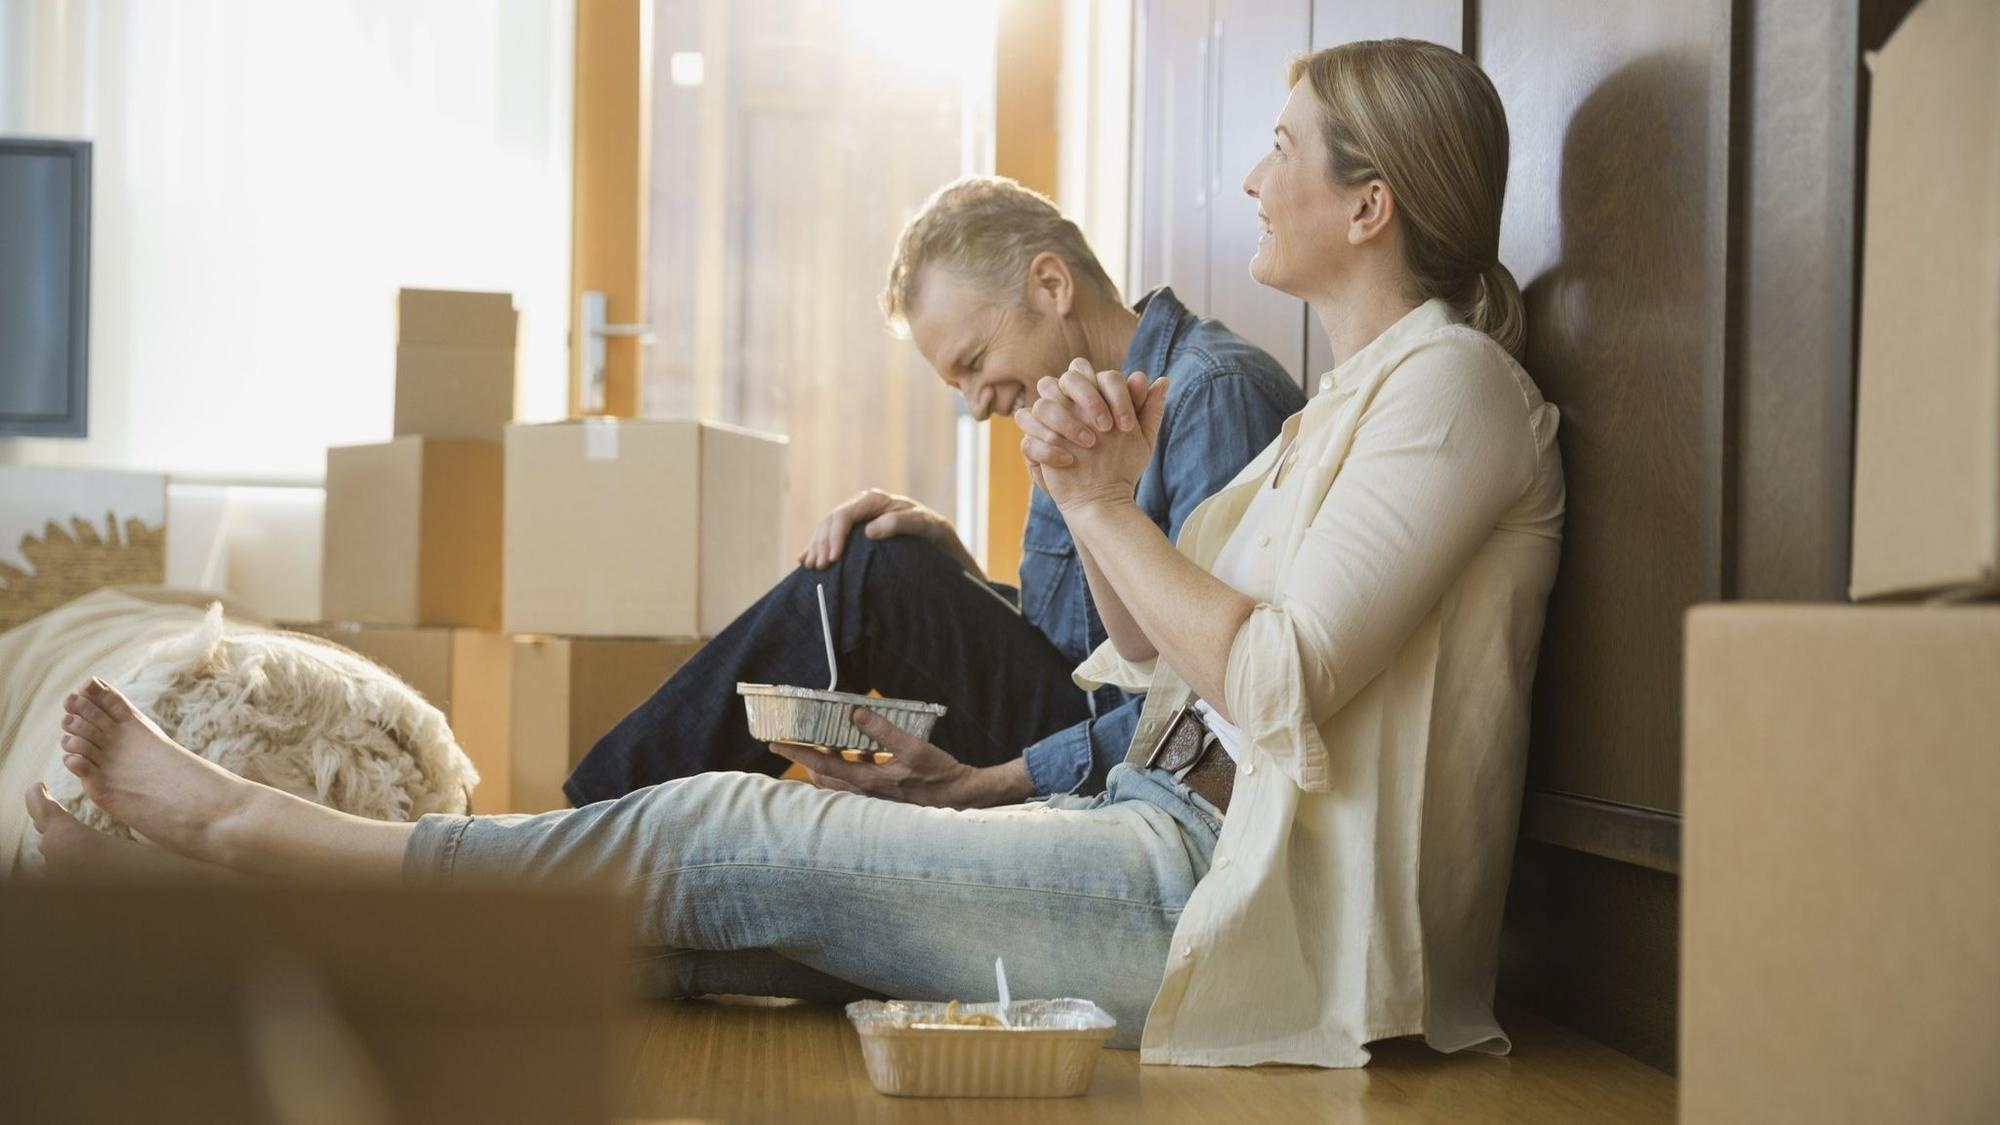 Should Unmarried Couples Sign A Contract Before Moving In Together